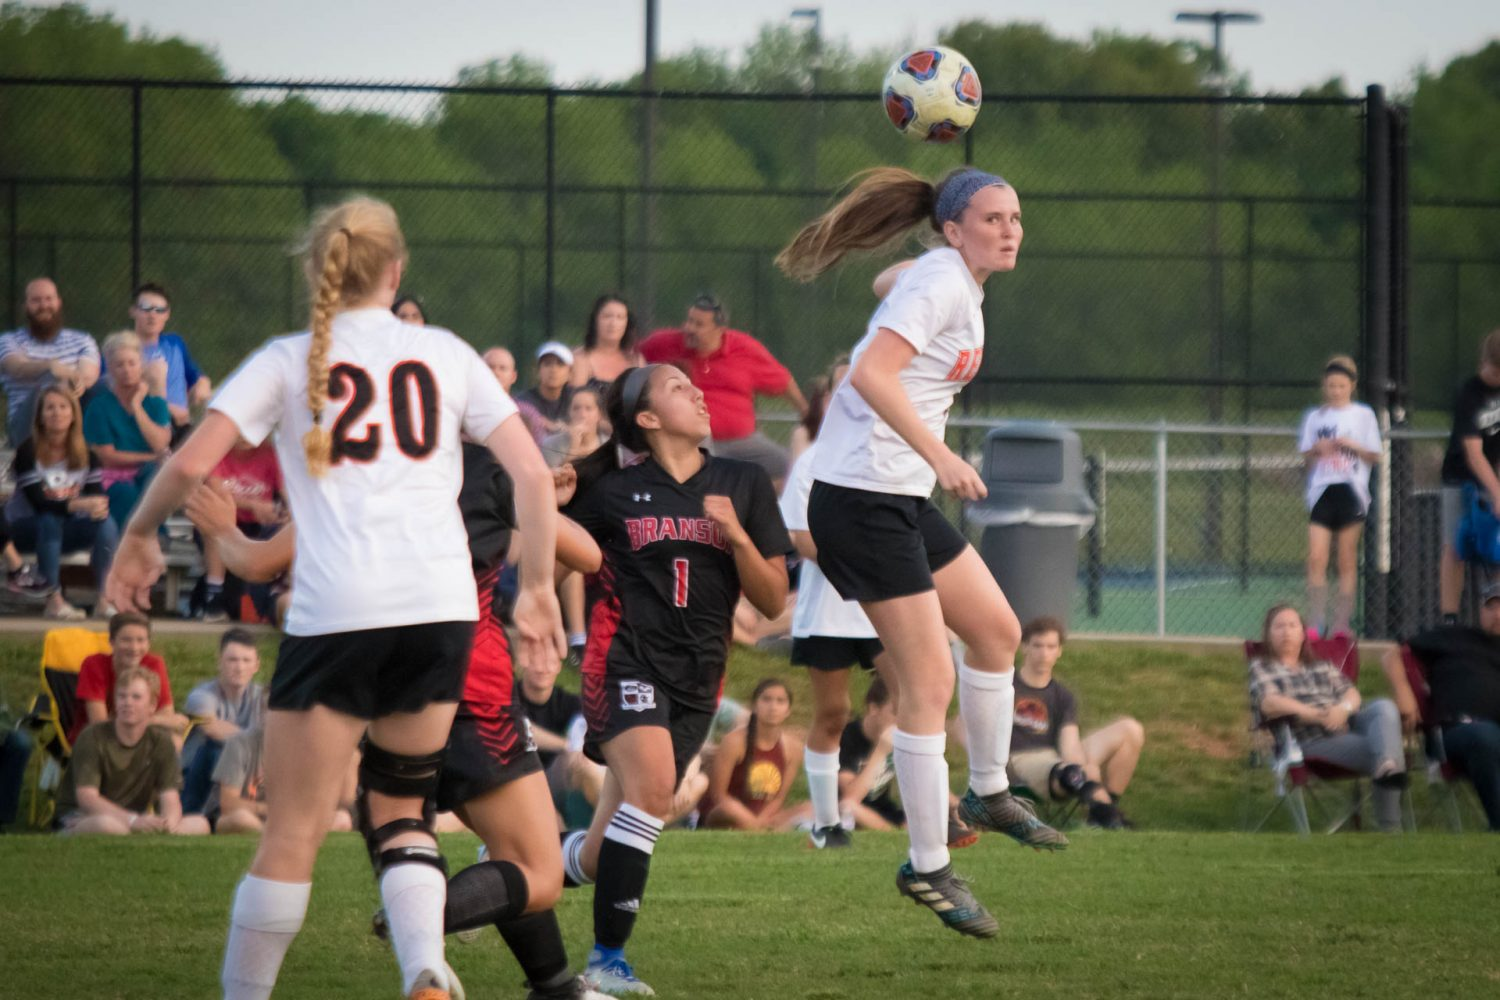 Relentless: Lady Tigers Attack In Waves, Swamp Pirates